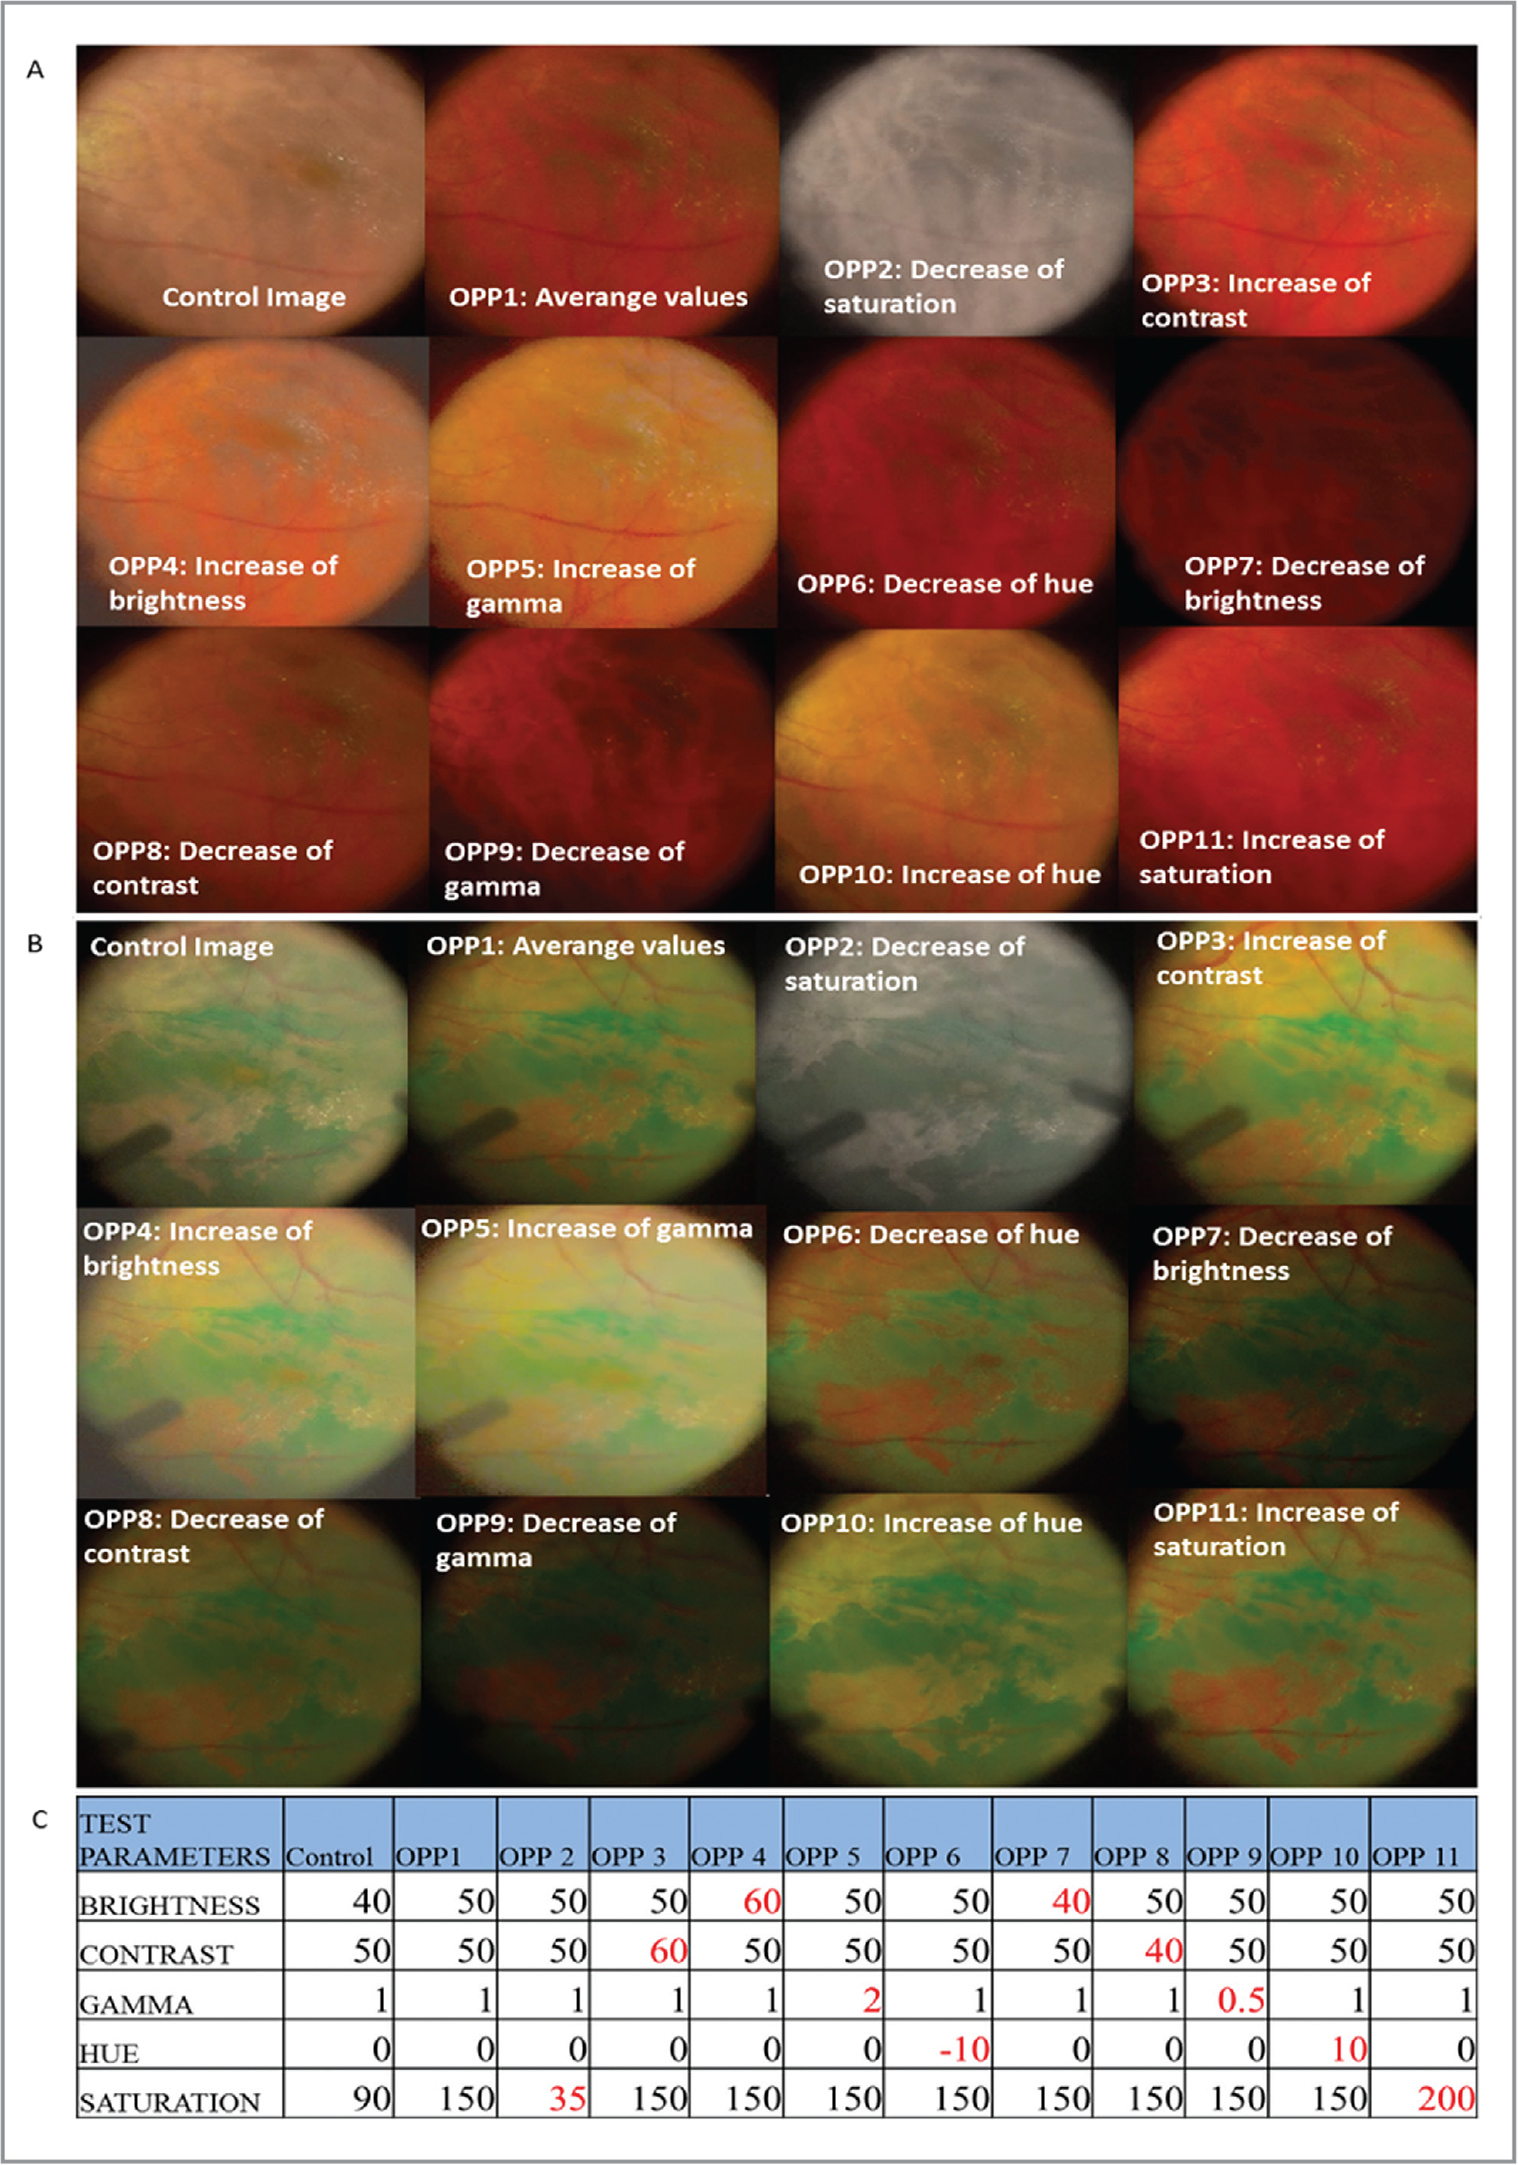 Intraoperative photographs of each unique optical parameter profile (OPP) during heads-up surgery. (A) Before use of indocyanine green (ICG) dye. (B) After use of ICG dye. (C) Values of the parameters used in each OPP.